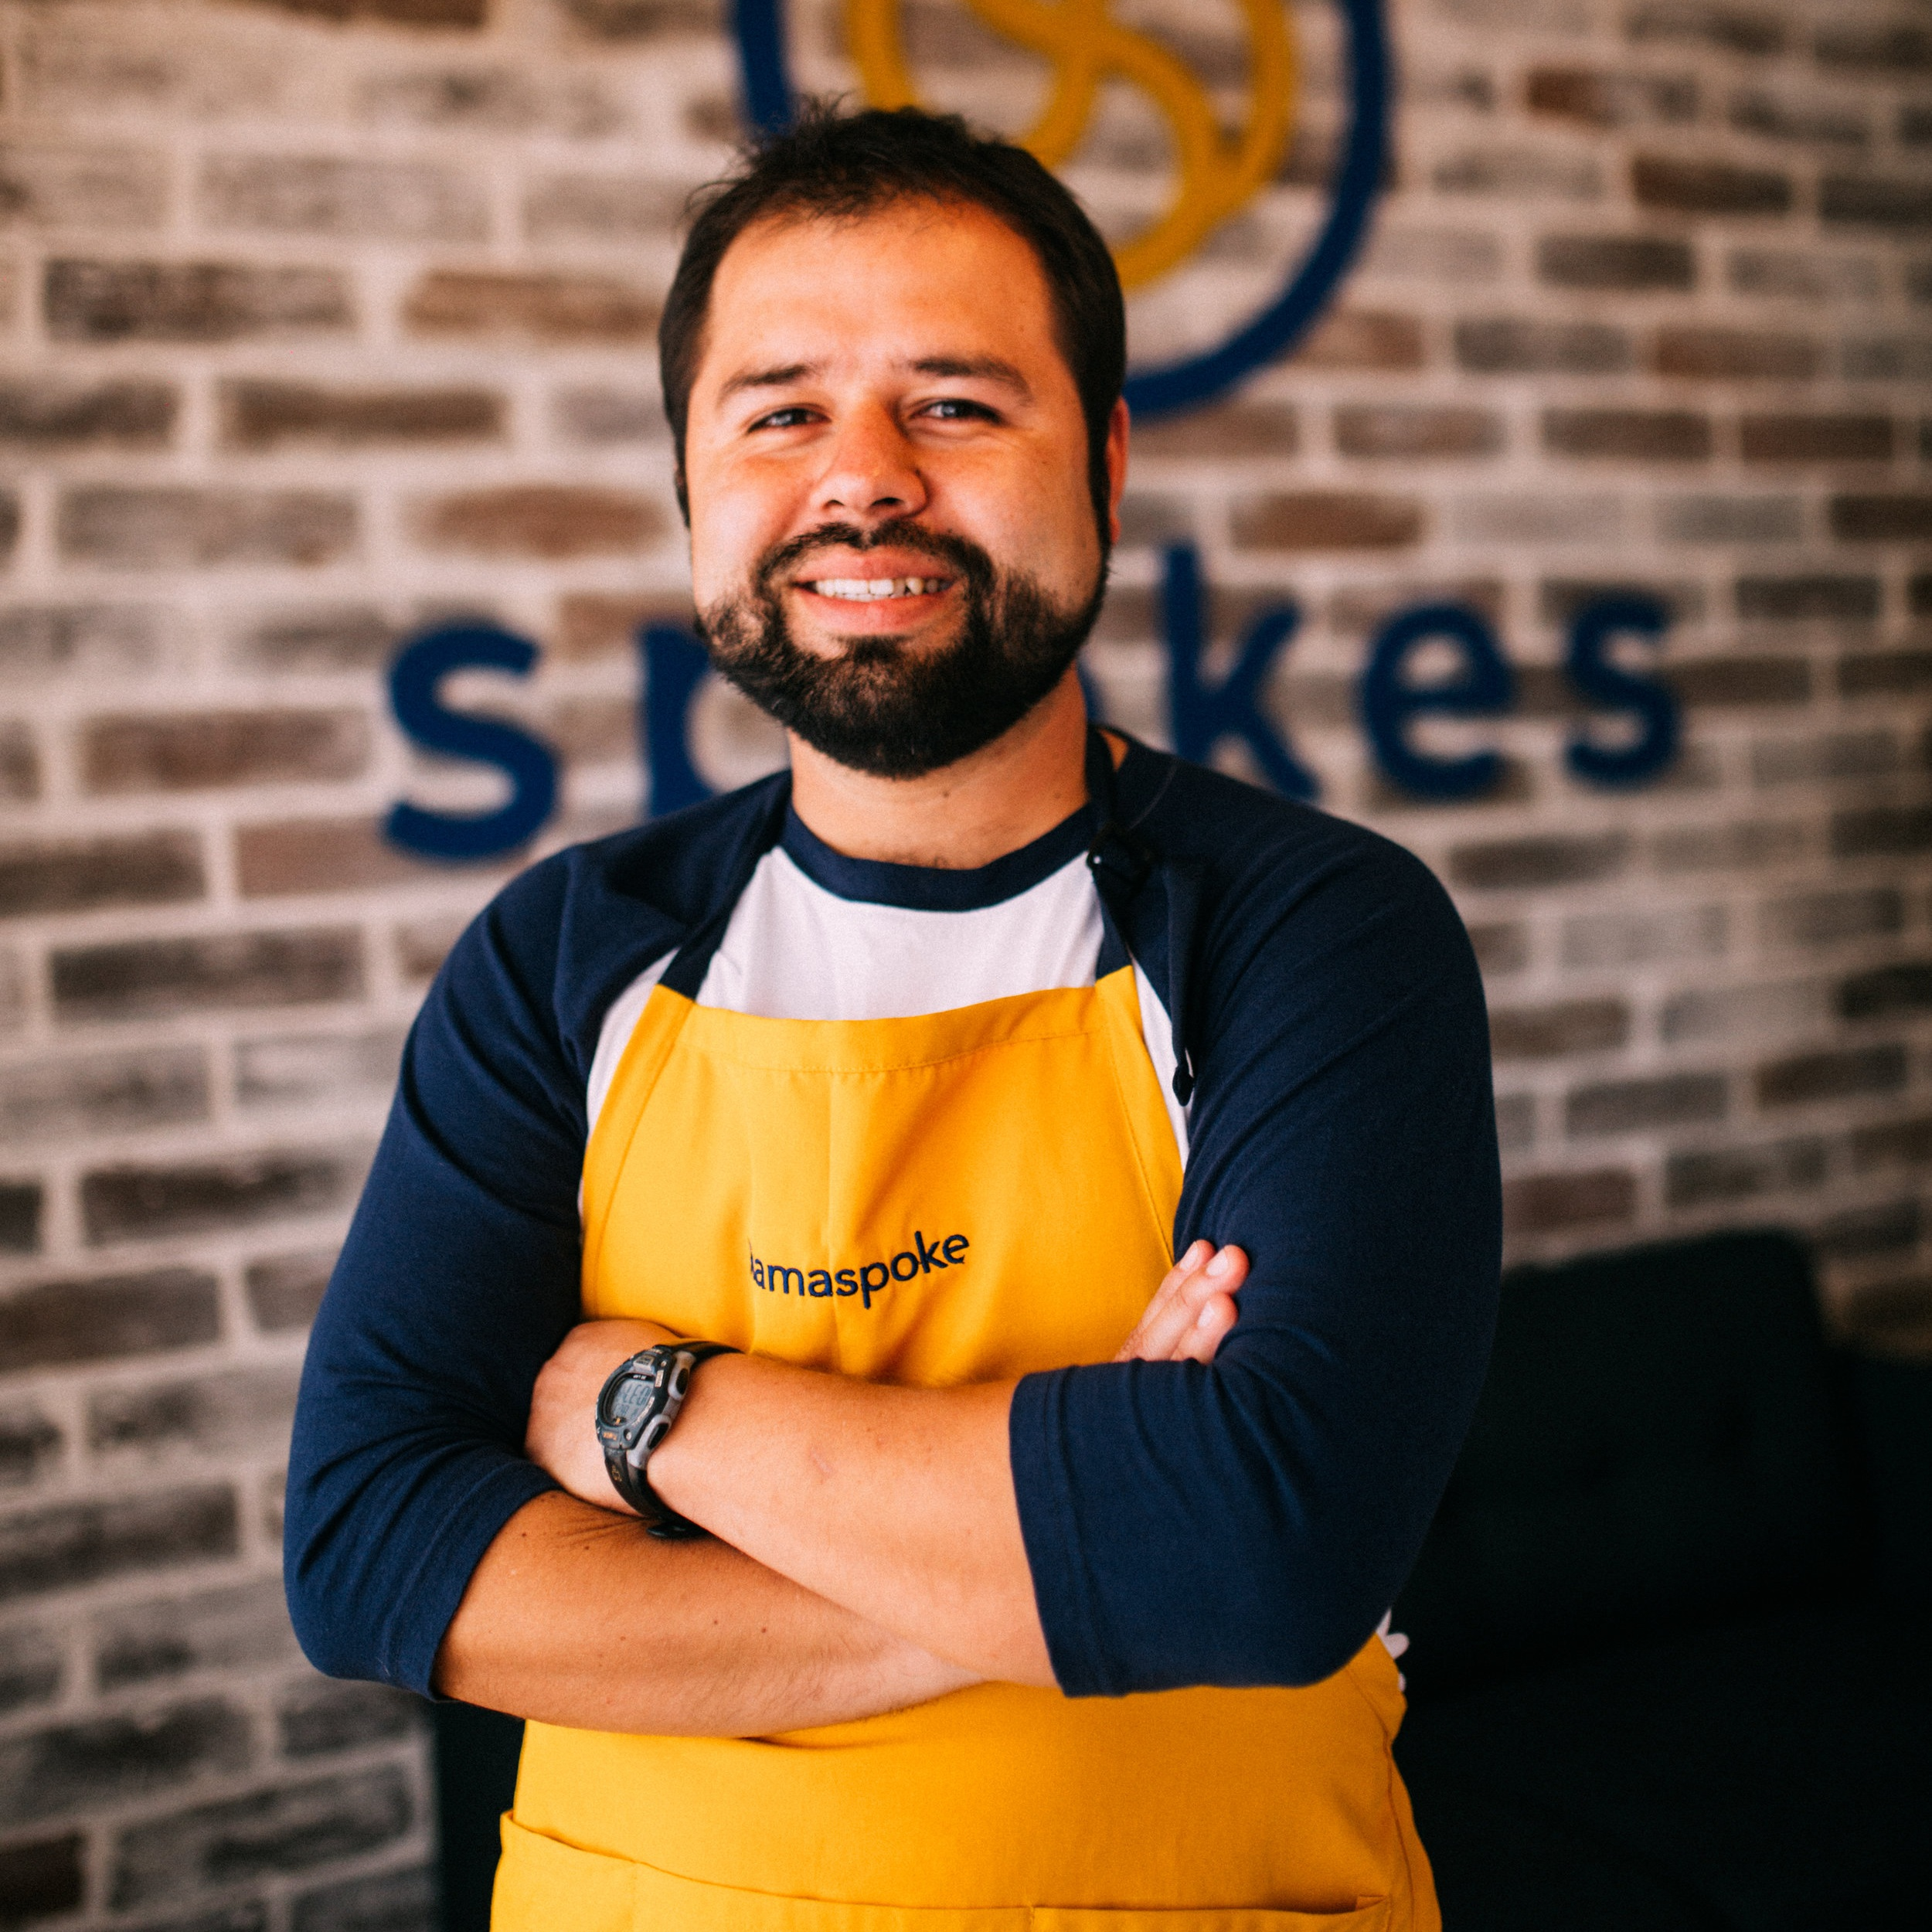 Jose Rolando Monterroso (AKA Roland) - Founder and Roaster, Spokes Cafe34 years old. Husband, father of three rascals and roaster in developmentWe live in Guatemala along with my wife Lisa who's our amazing baker for our desserts. We've been running the coffee shop for a year now. I love roasting for our little café and for others. I look into the different challenges that this beautiful bean gives us every day! I love coffee but mostly I love how coffee generates community. #iamaspoke